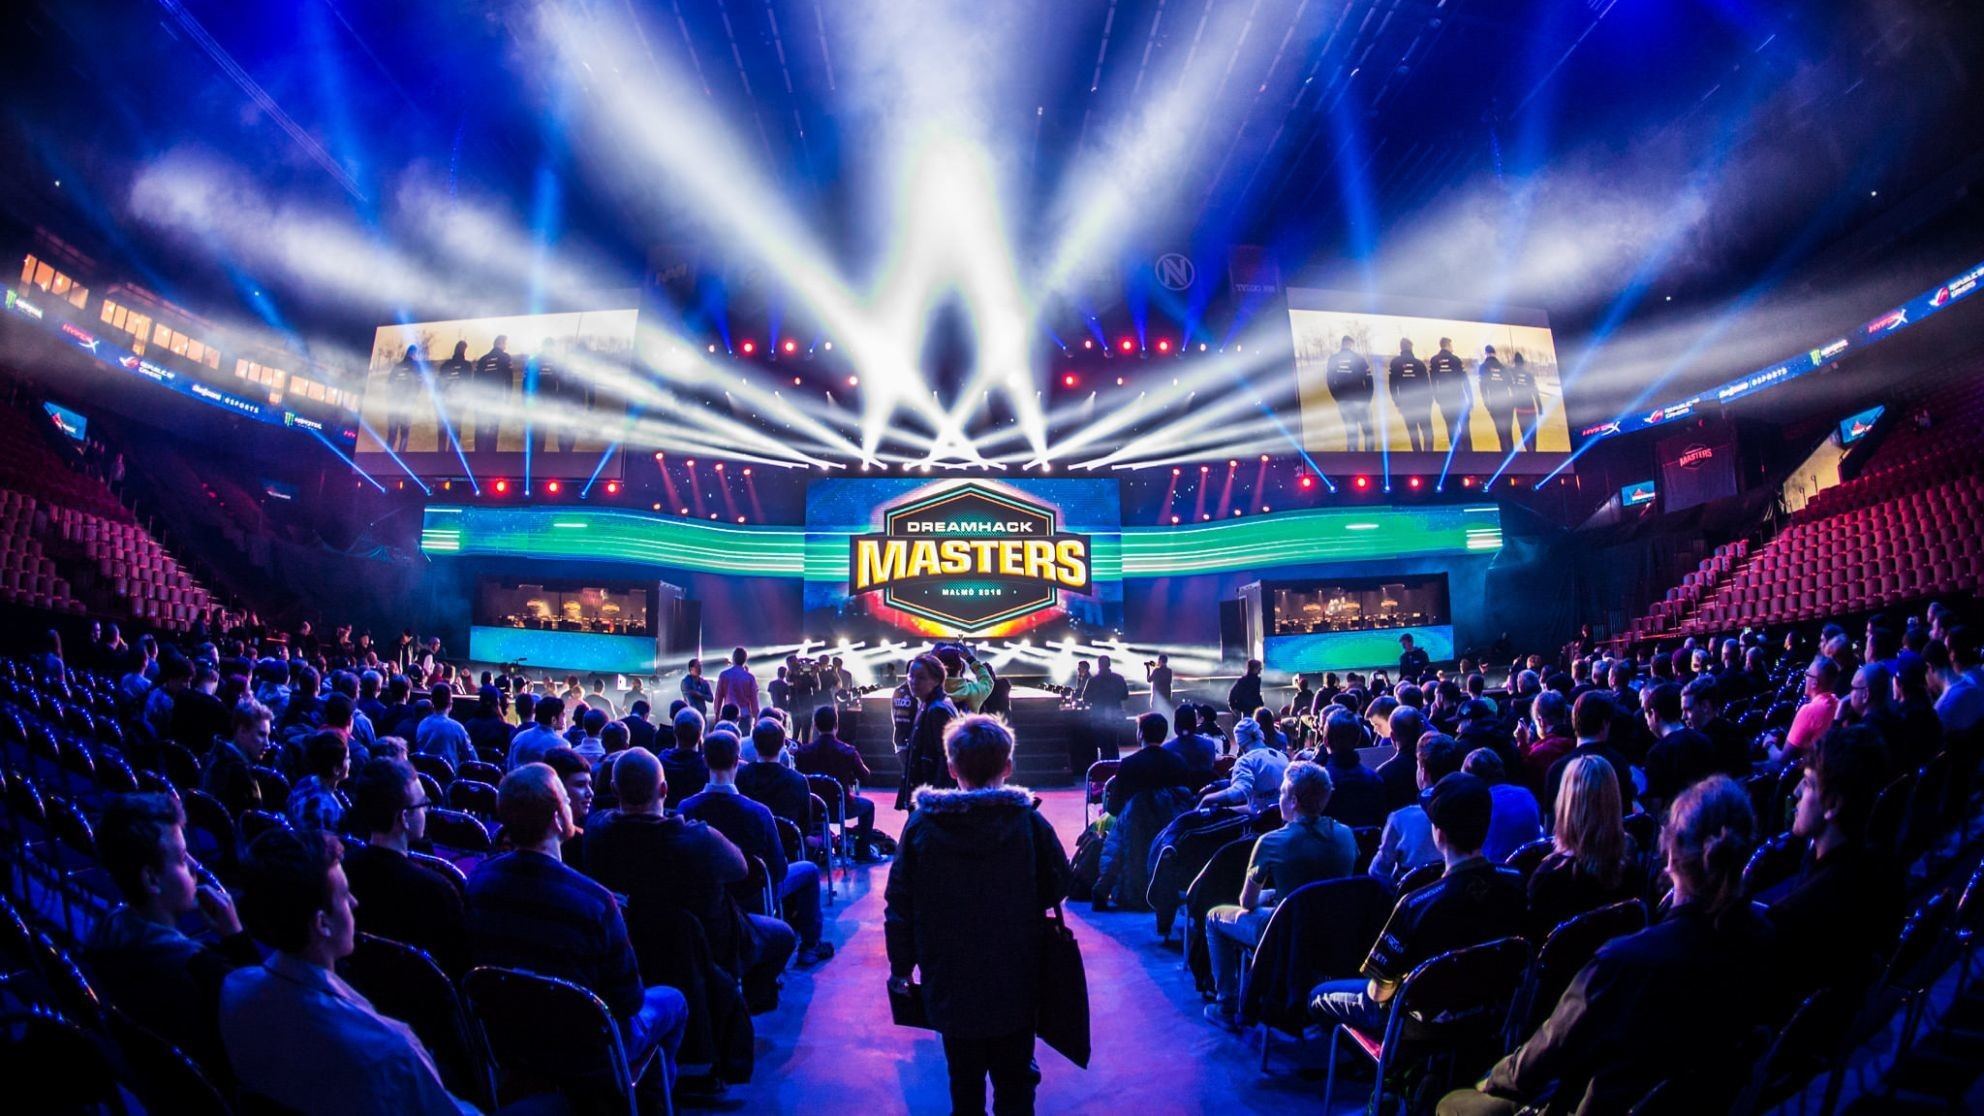 DreamHack will host another tournament in Dallas